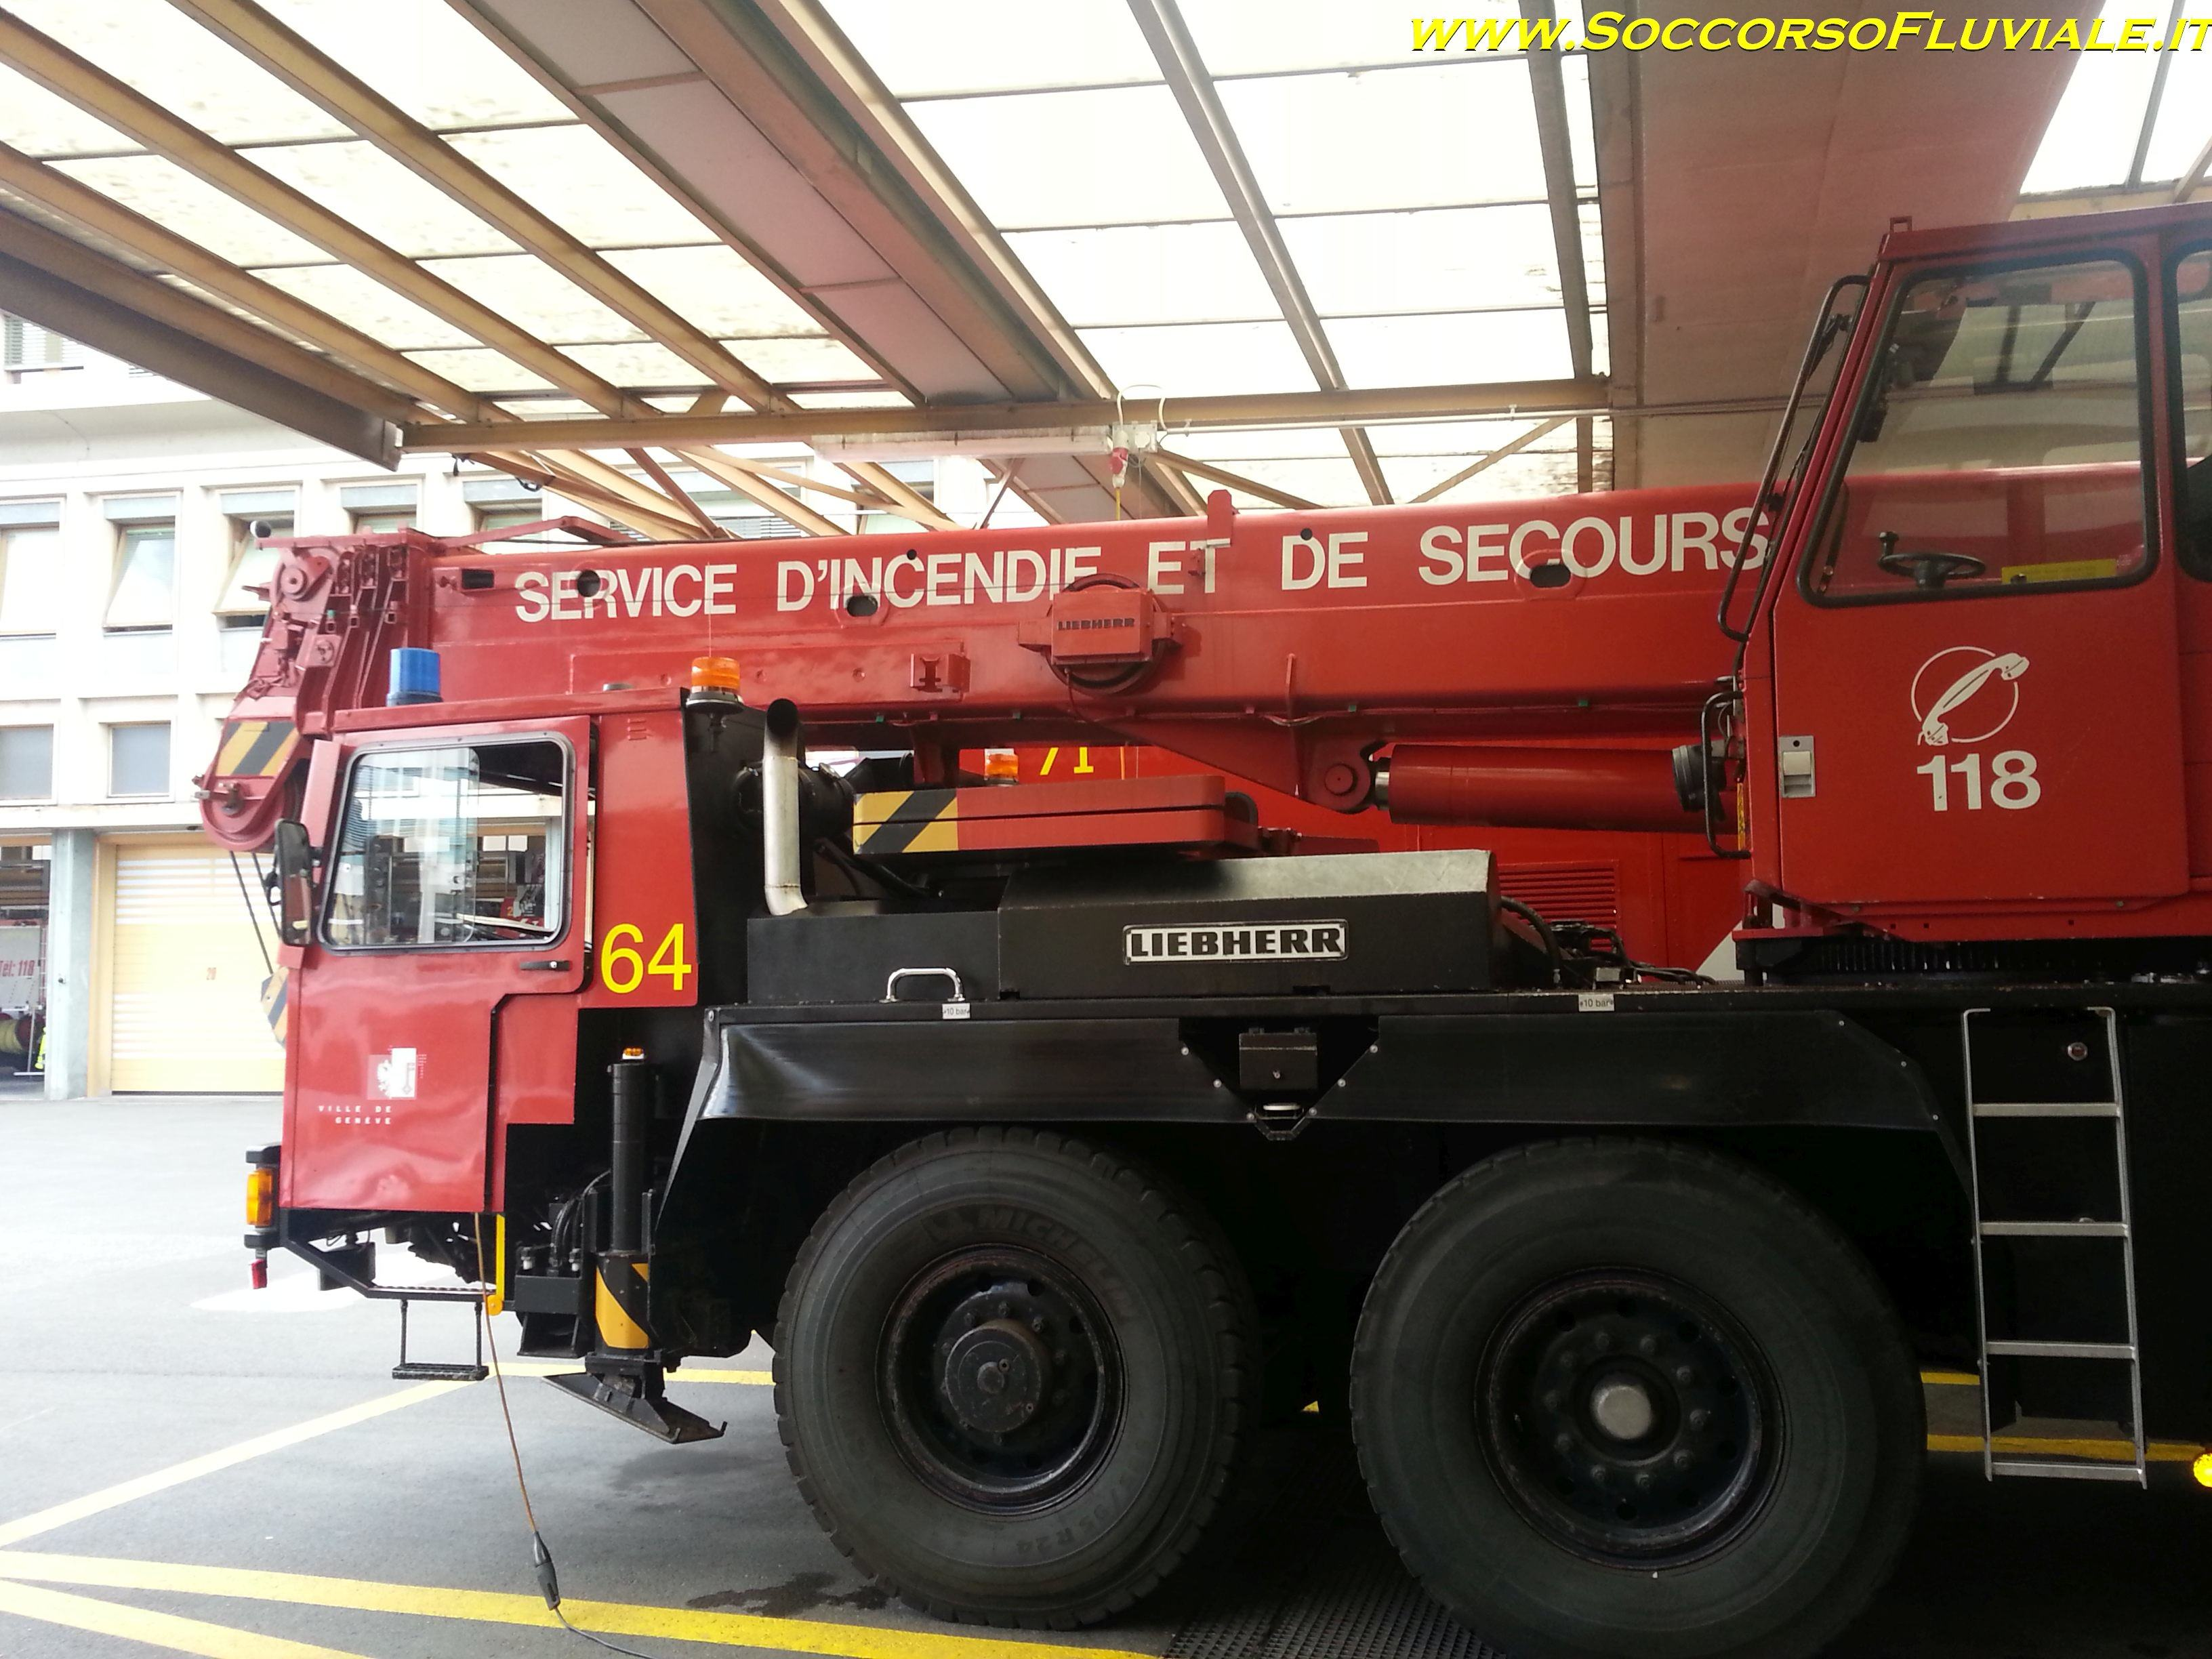 swiss fire department truck